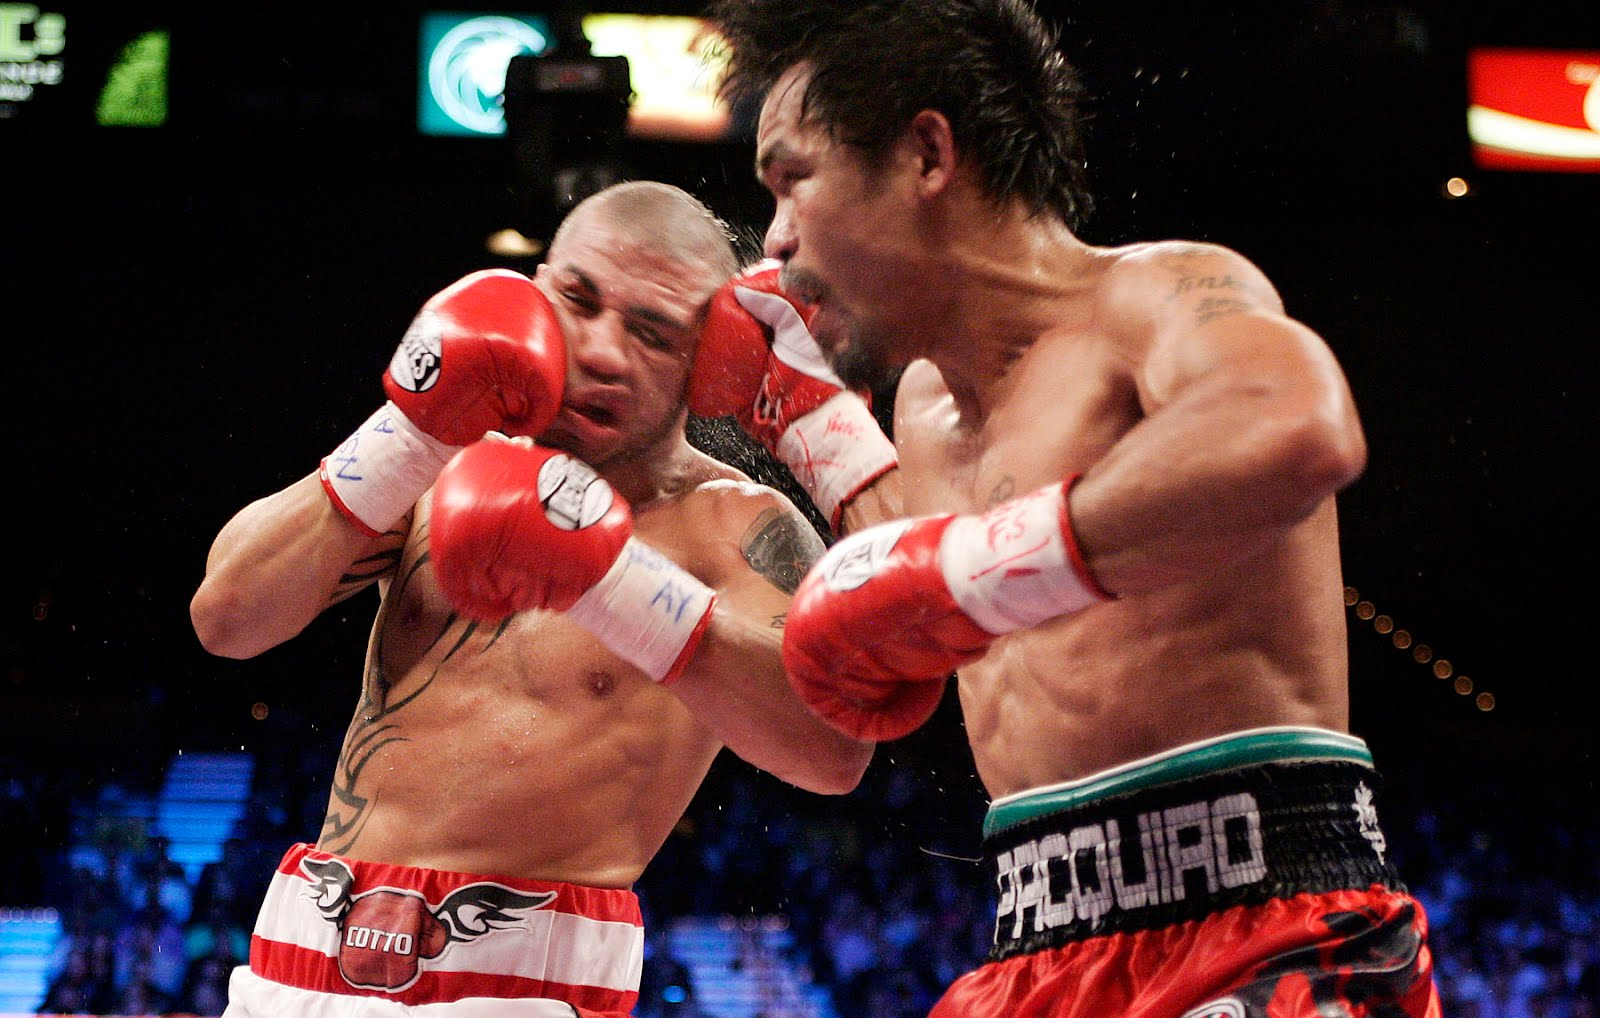 http://3.bp.blogspot.com/-cymxmND-KCw/TxfGxWo4lPI/AAAAAAAAAJo/V67FRVisD_Y/s1600/manny-pacquiao-in-the-ring-pinoy-filipino-legend-hd-desktop-wallpaper-screensaver-background.jpg